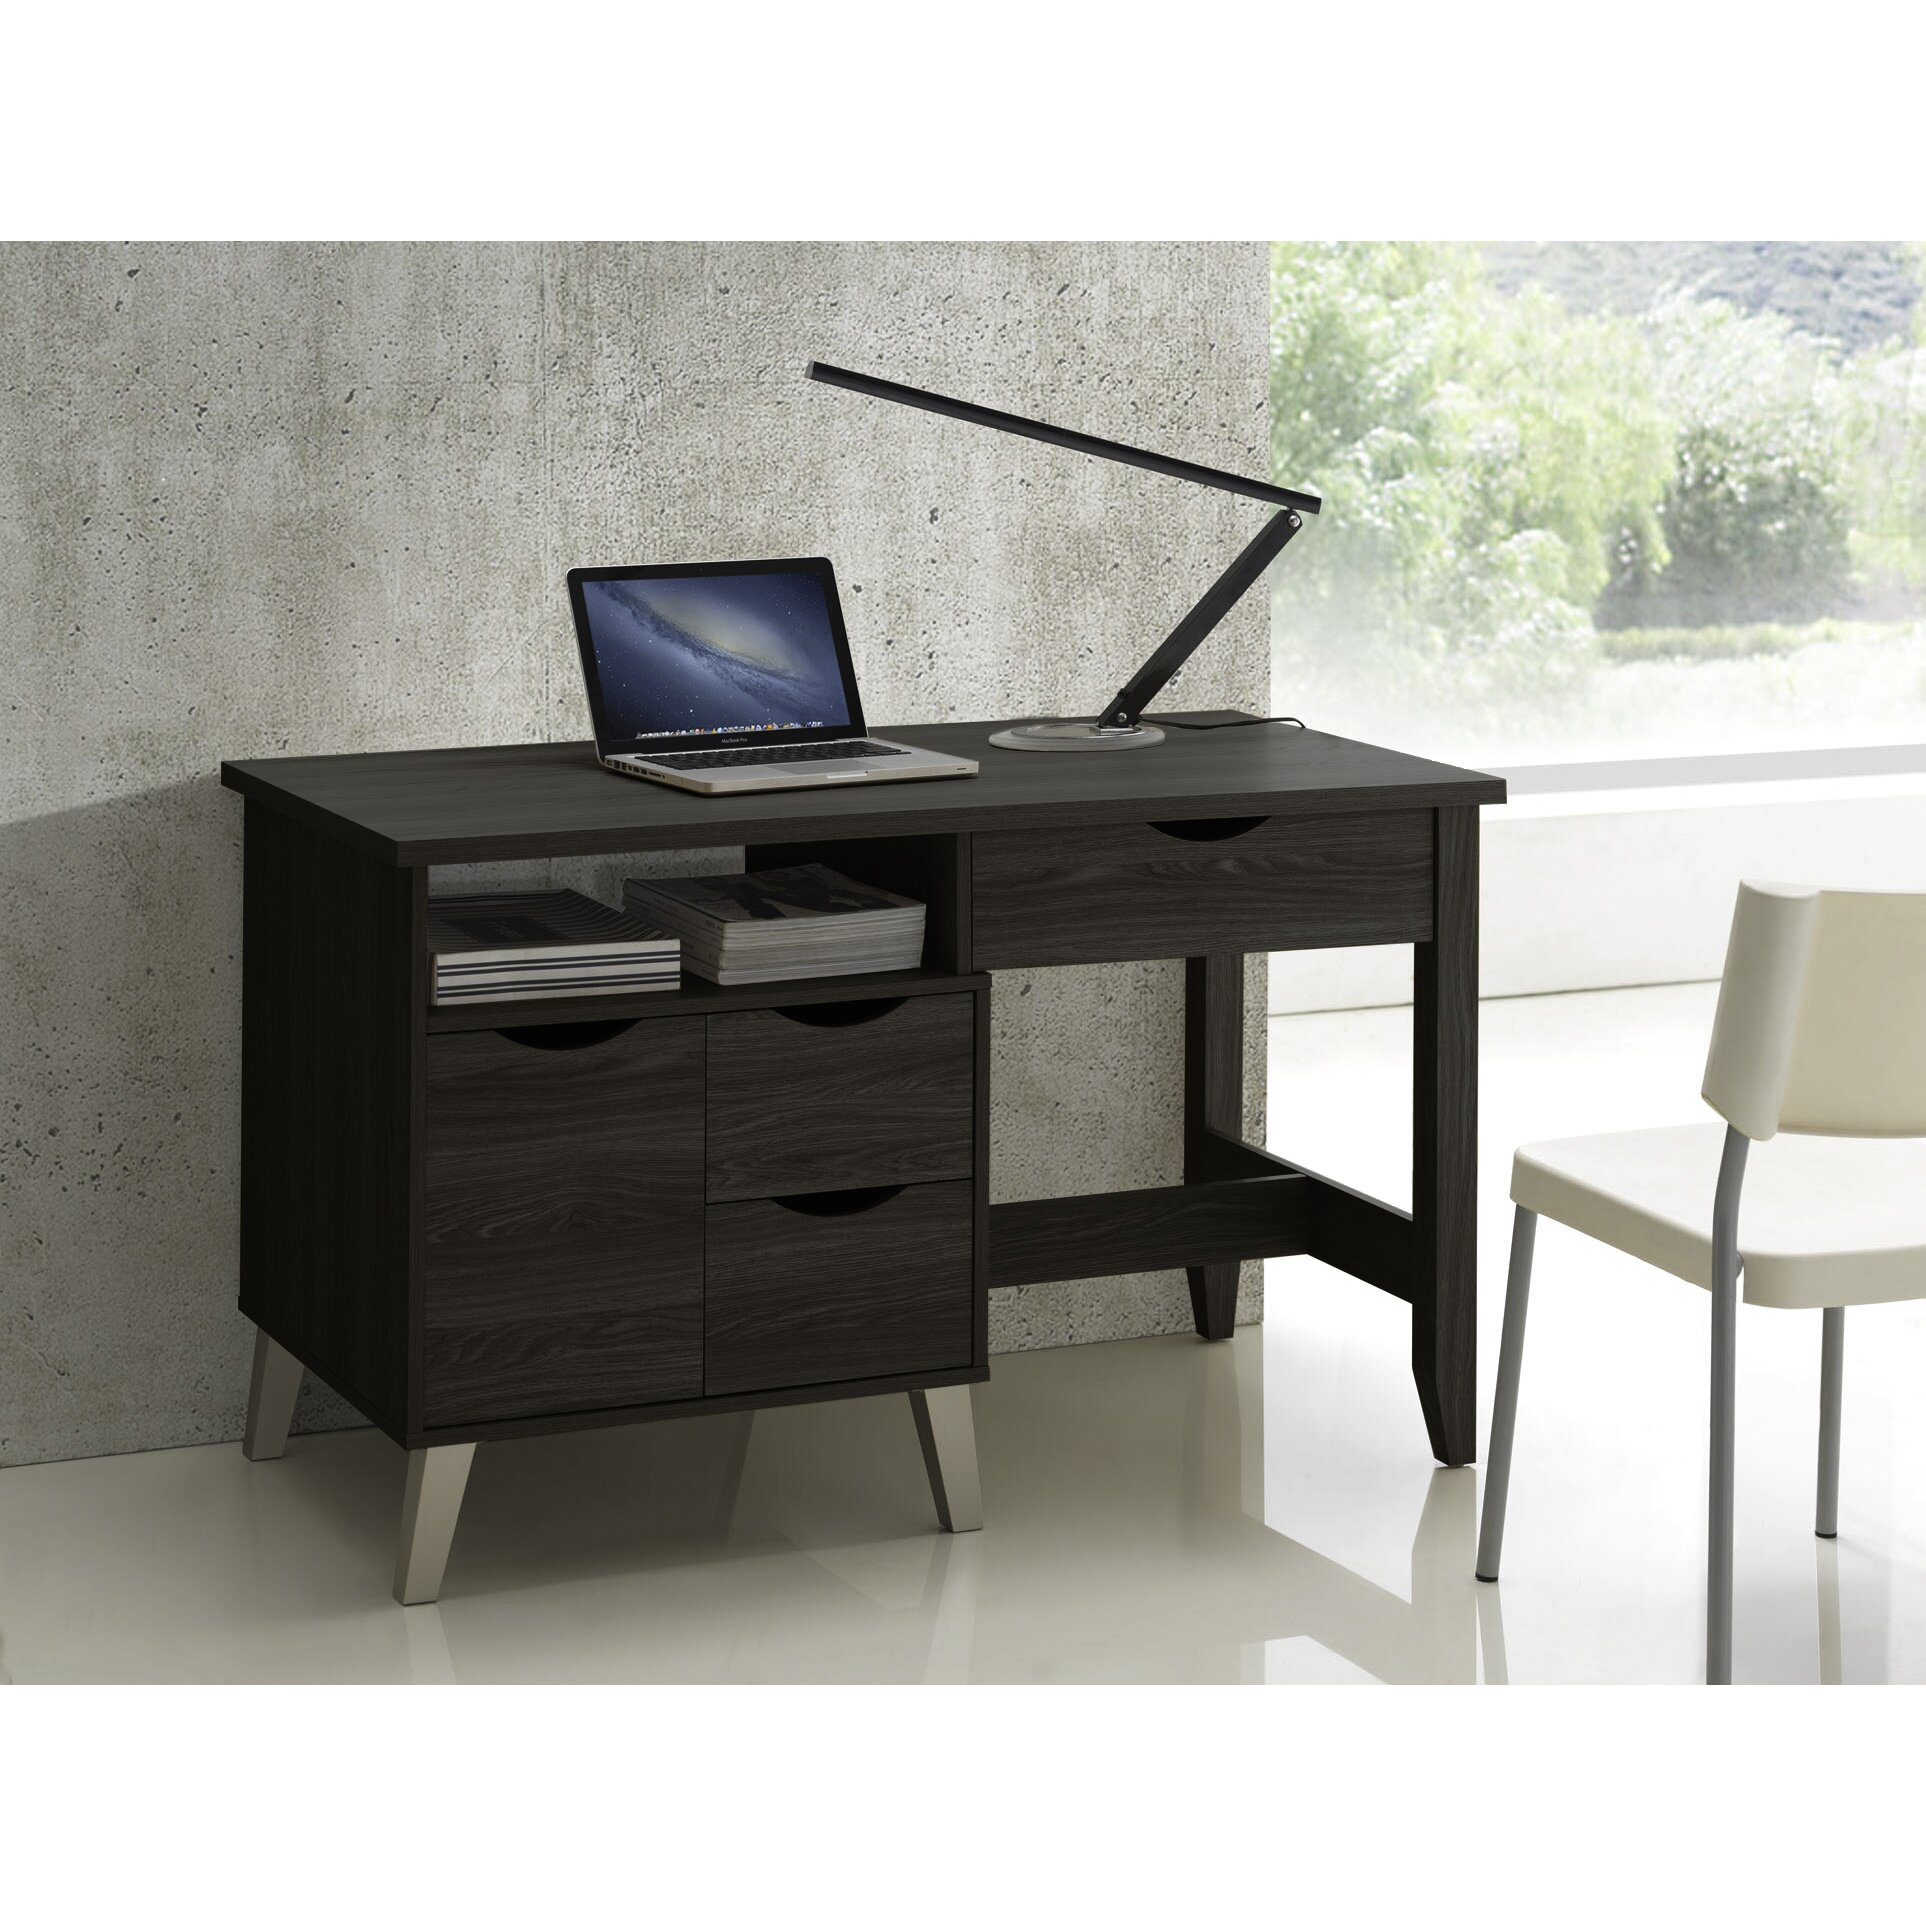 Wholesale Interiors Baxton Studio Home Office 3 Drawer